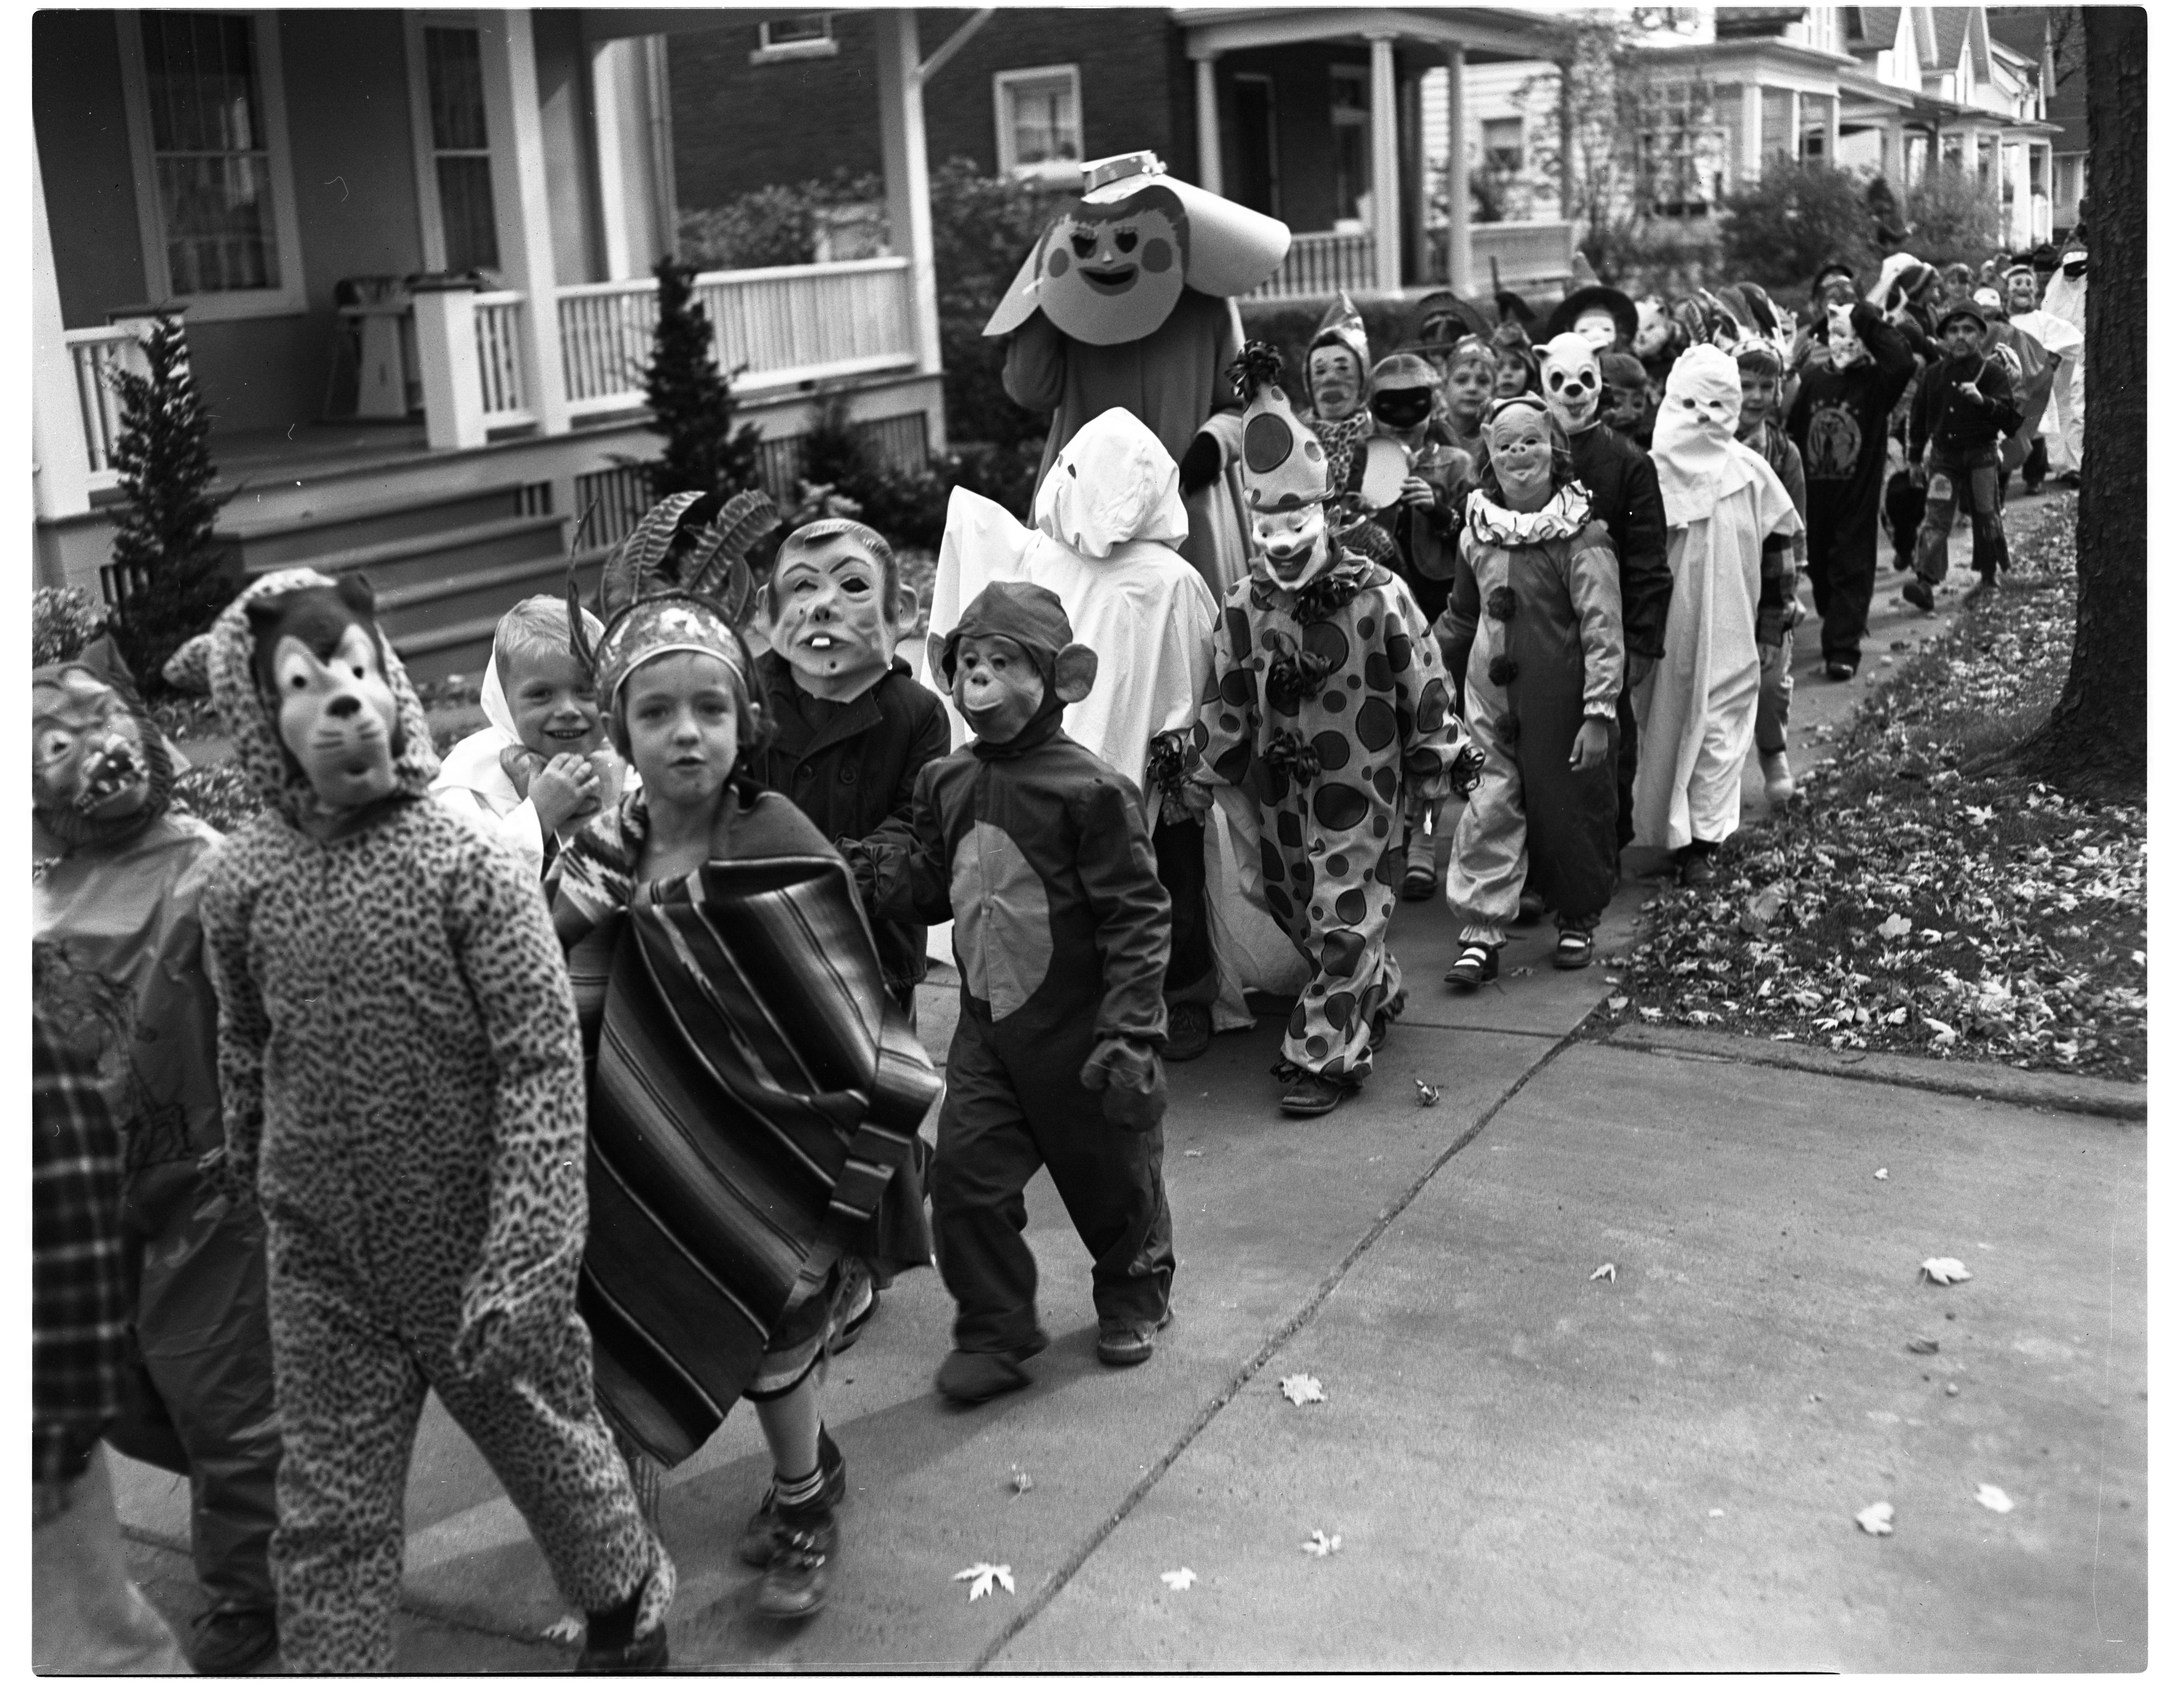 Burns Park School Halloween Parade, October 1951